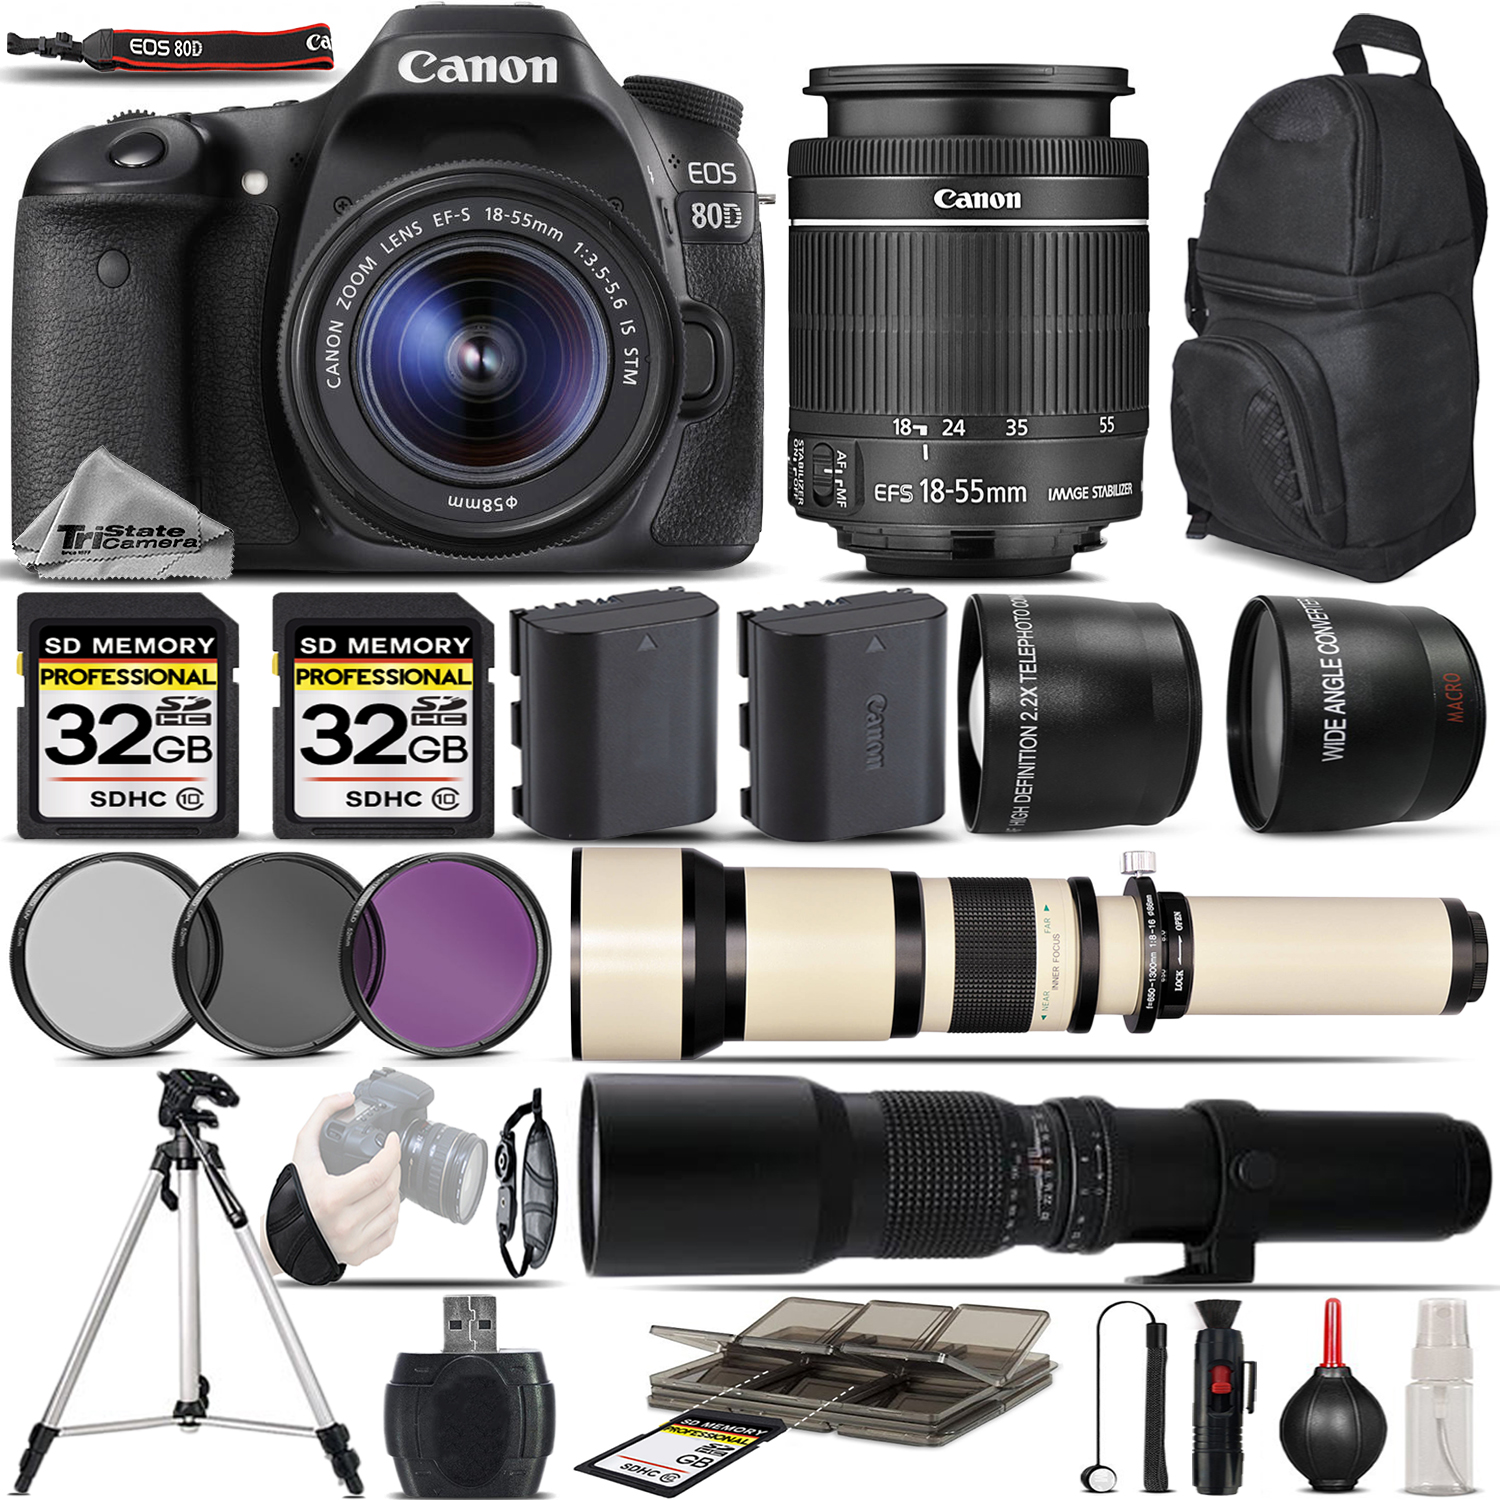 EOS 80D Digital SLR with Wi-Fi NFC Camera + 18-55 STM + 650-1300mm + 500mm *FREE SHIPPING*